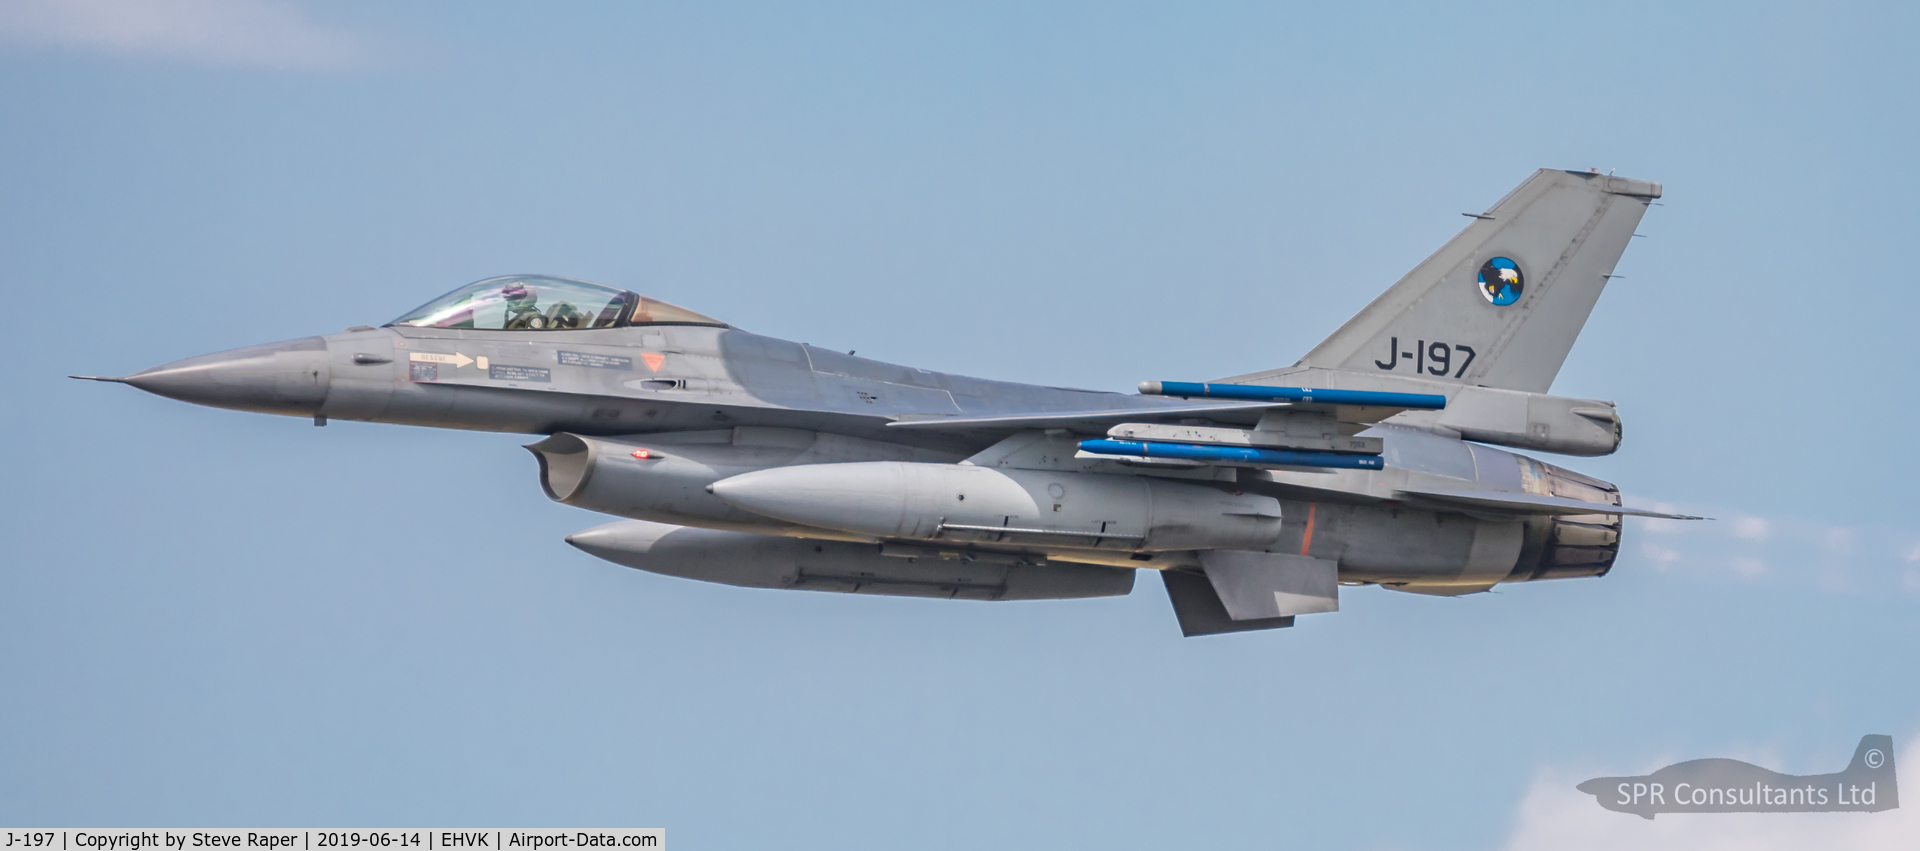 J-197, Fokker F-16AM Fighting Falcon C/N 6D-104, Royal Netherlands Air Force Base Volkel air day 14 June 2019